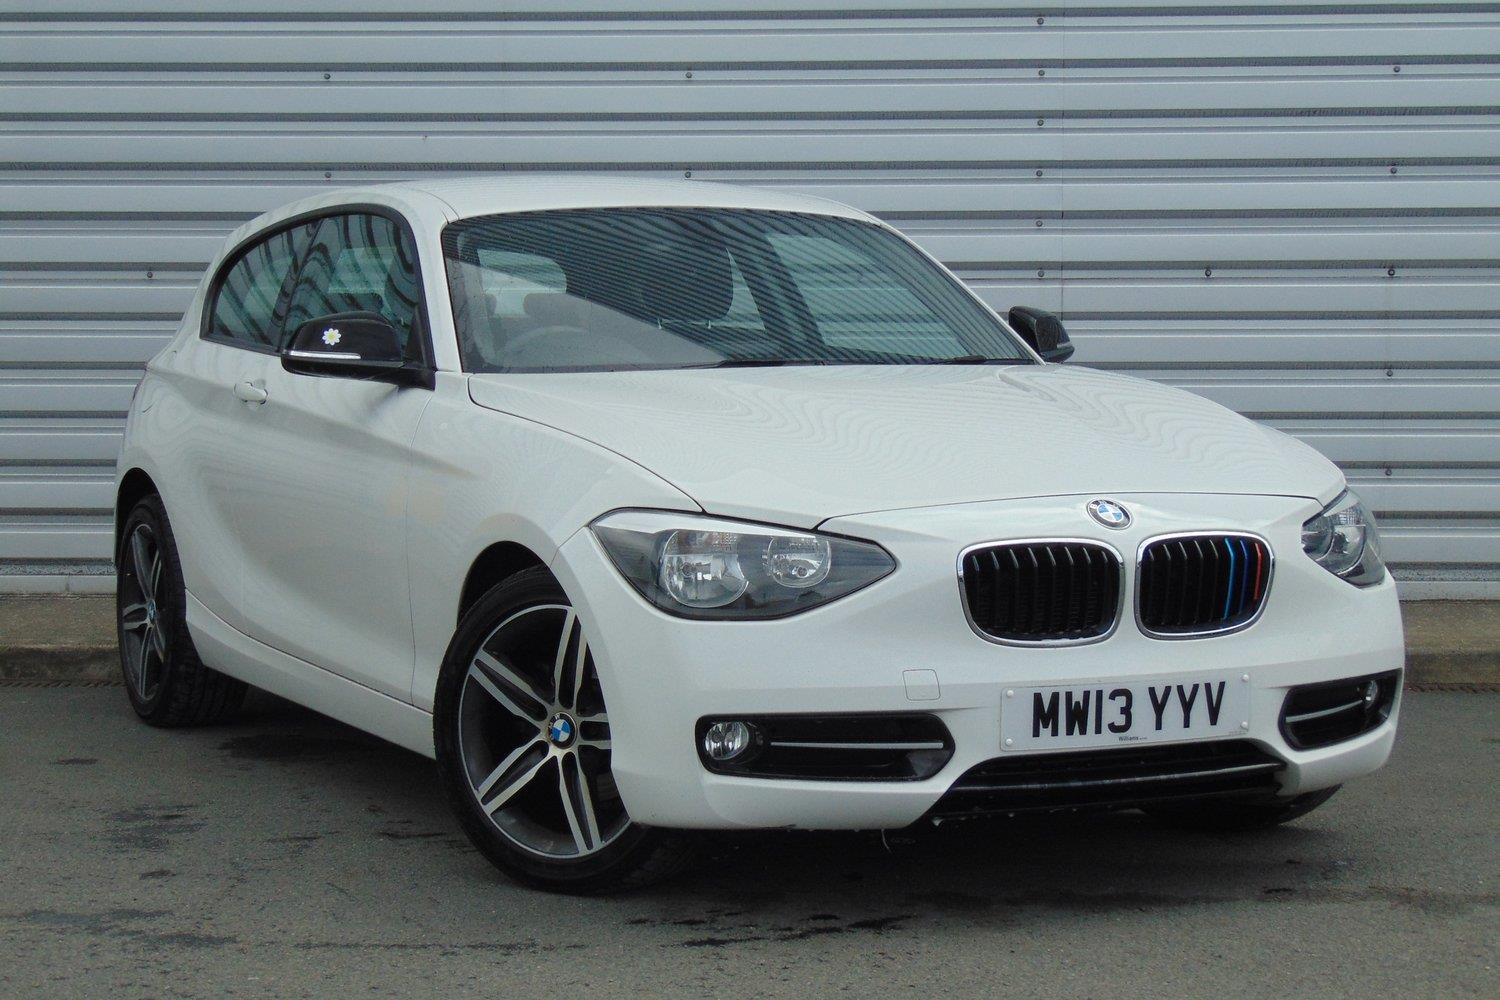 BMW 1 Series 3-door Sports Hatch MW13YYV - Image 10